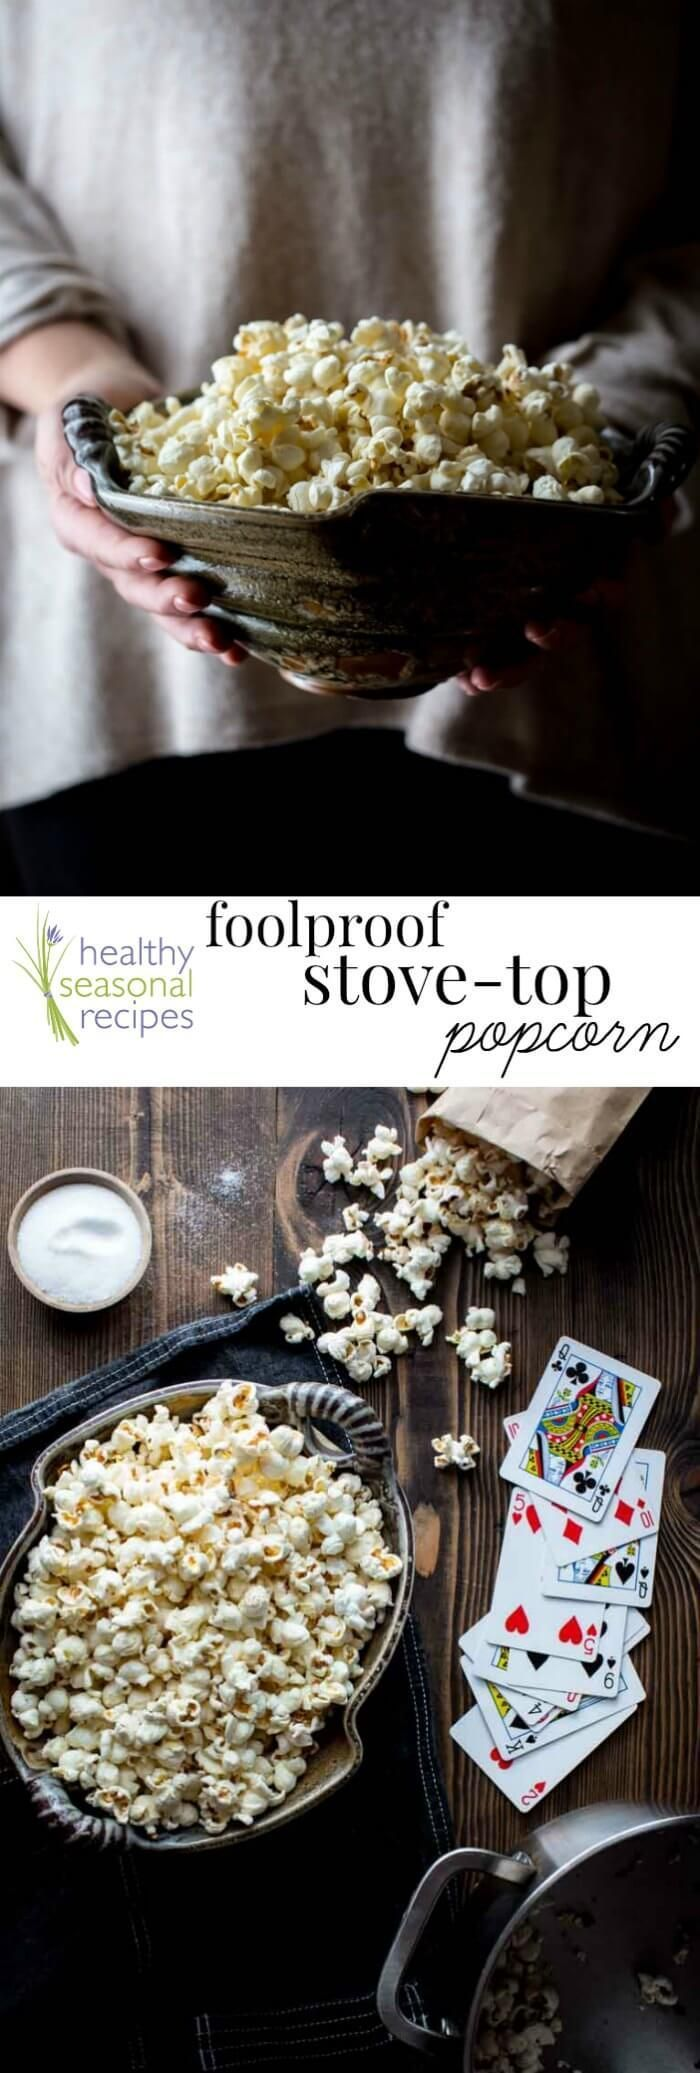 Here is the best way to make foolproof popcorn, no burning, no missed kernels! And this is only 54 calories per cup! Healthy Seasonal Recipes @healthyseasonal